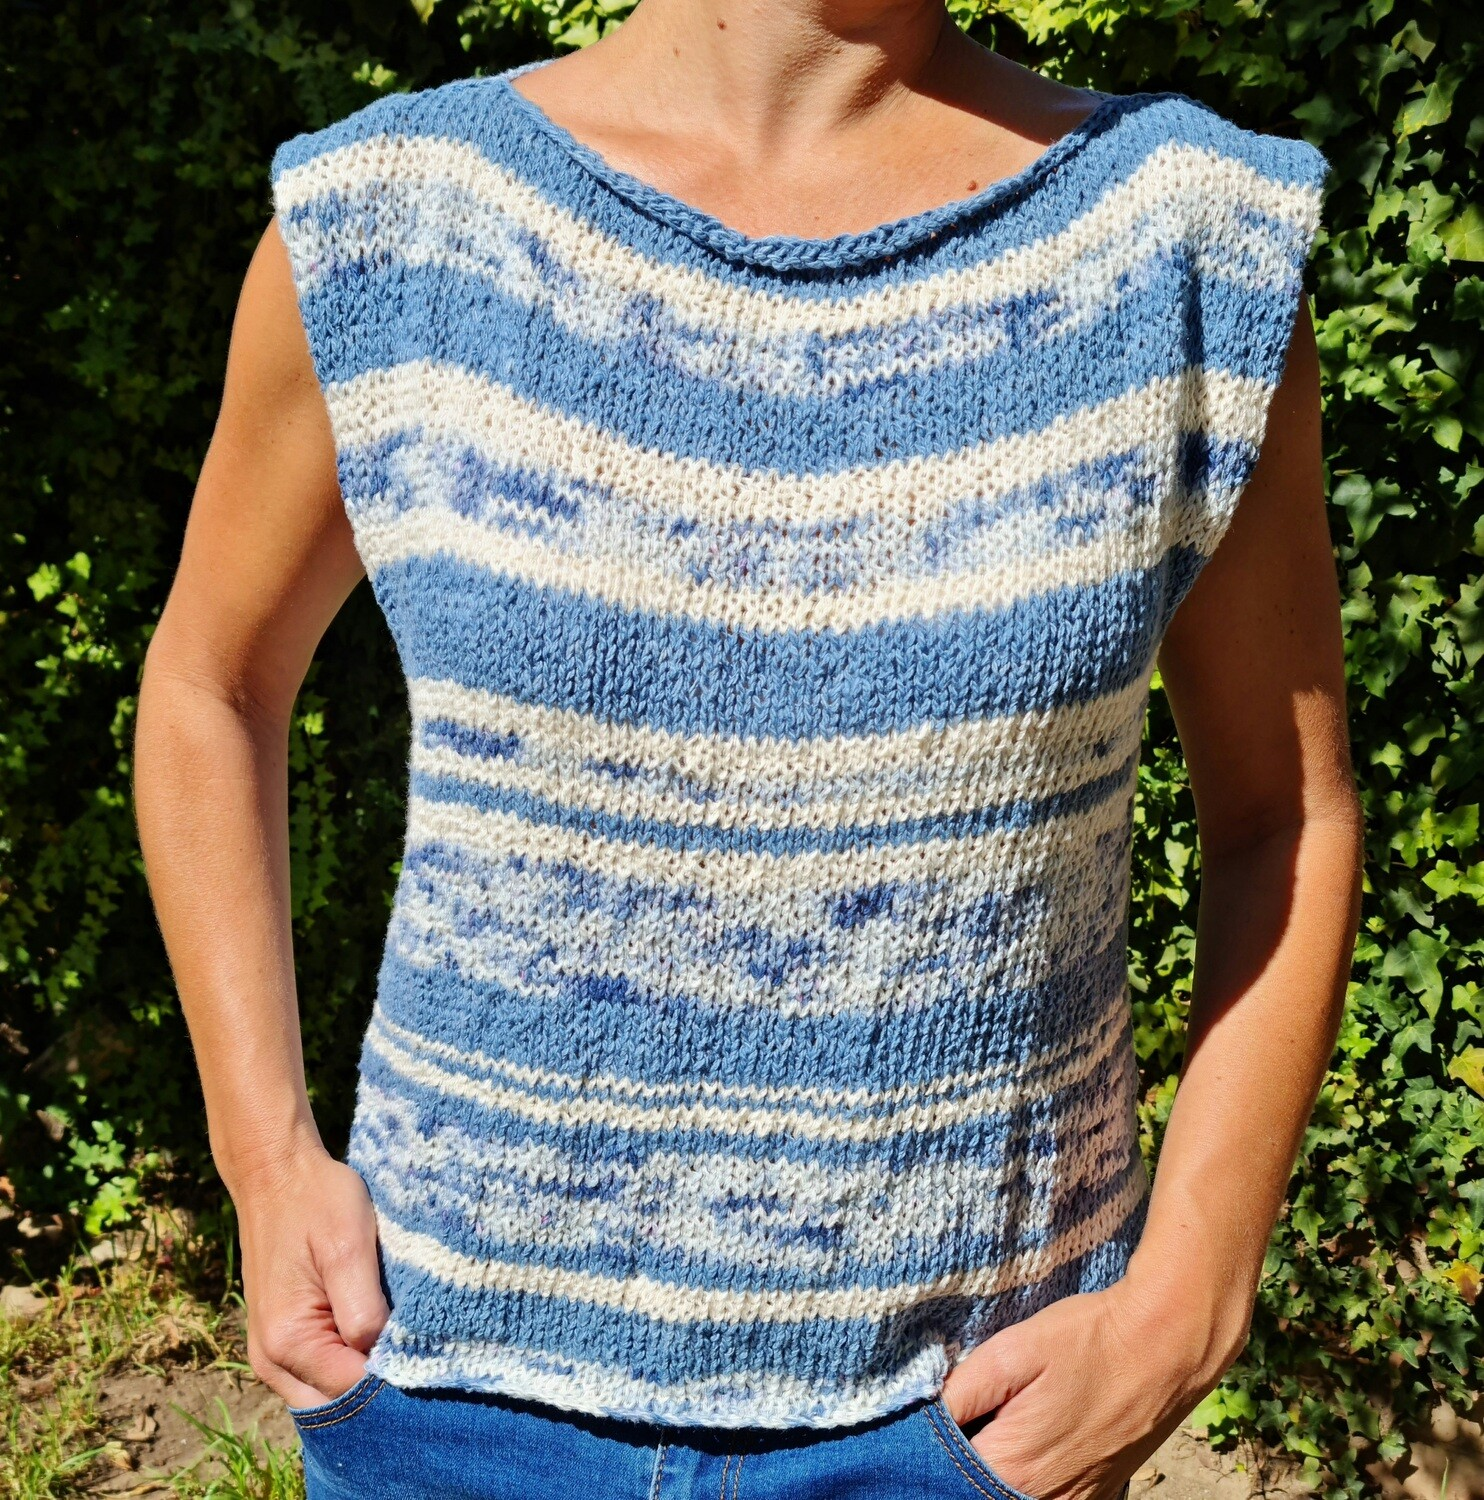 Una Knitted Top Kit